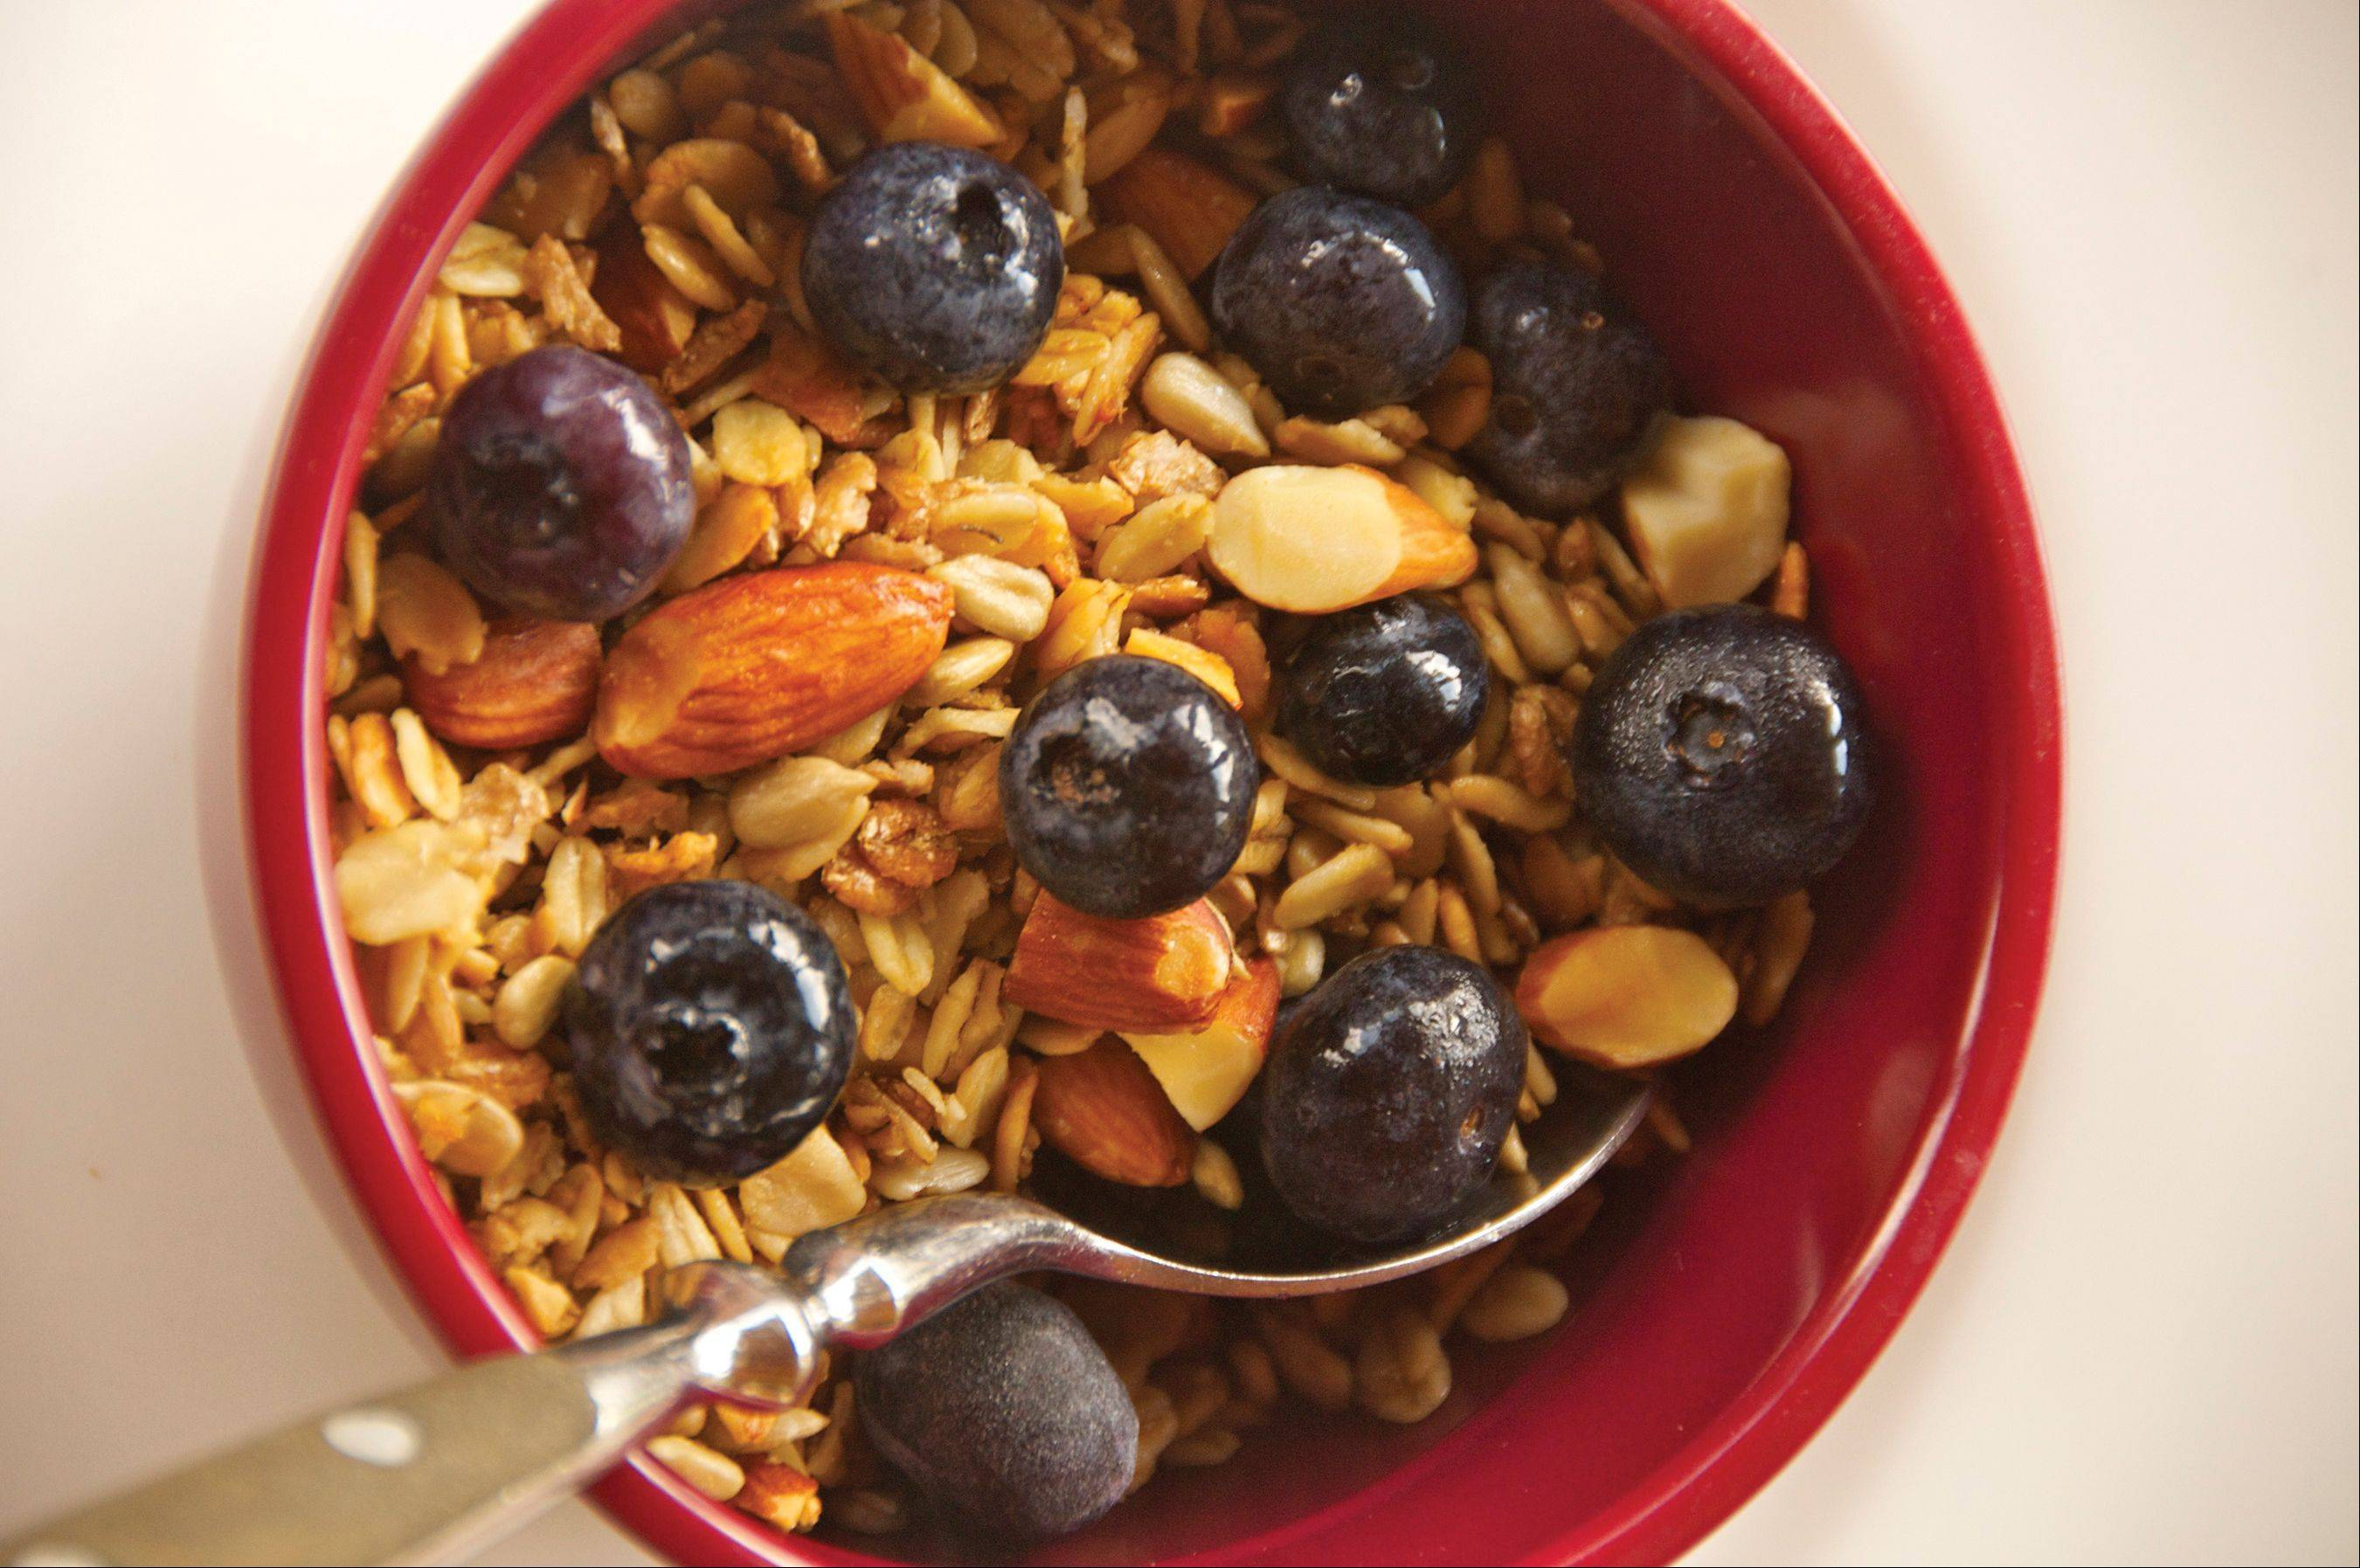 A few fresh blueberries are the only addition needed to this simple homemade granola.